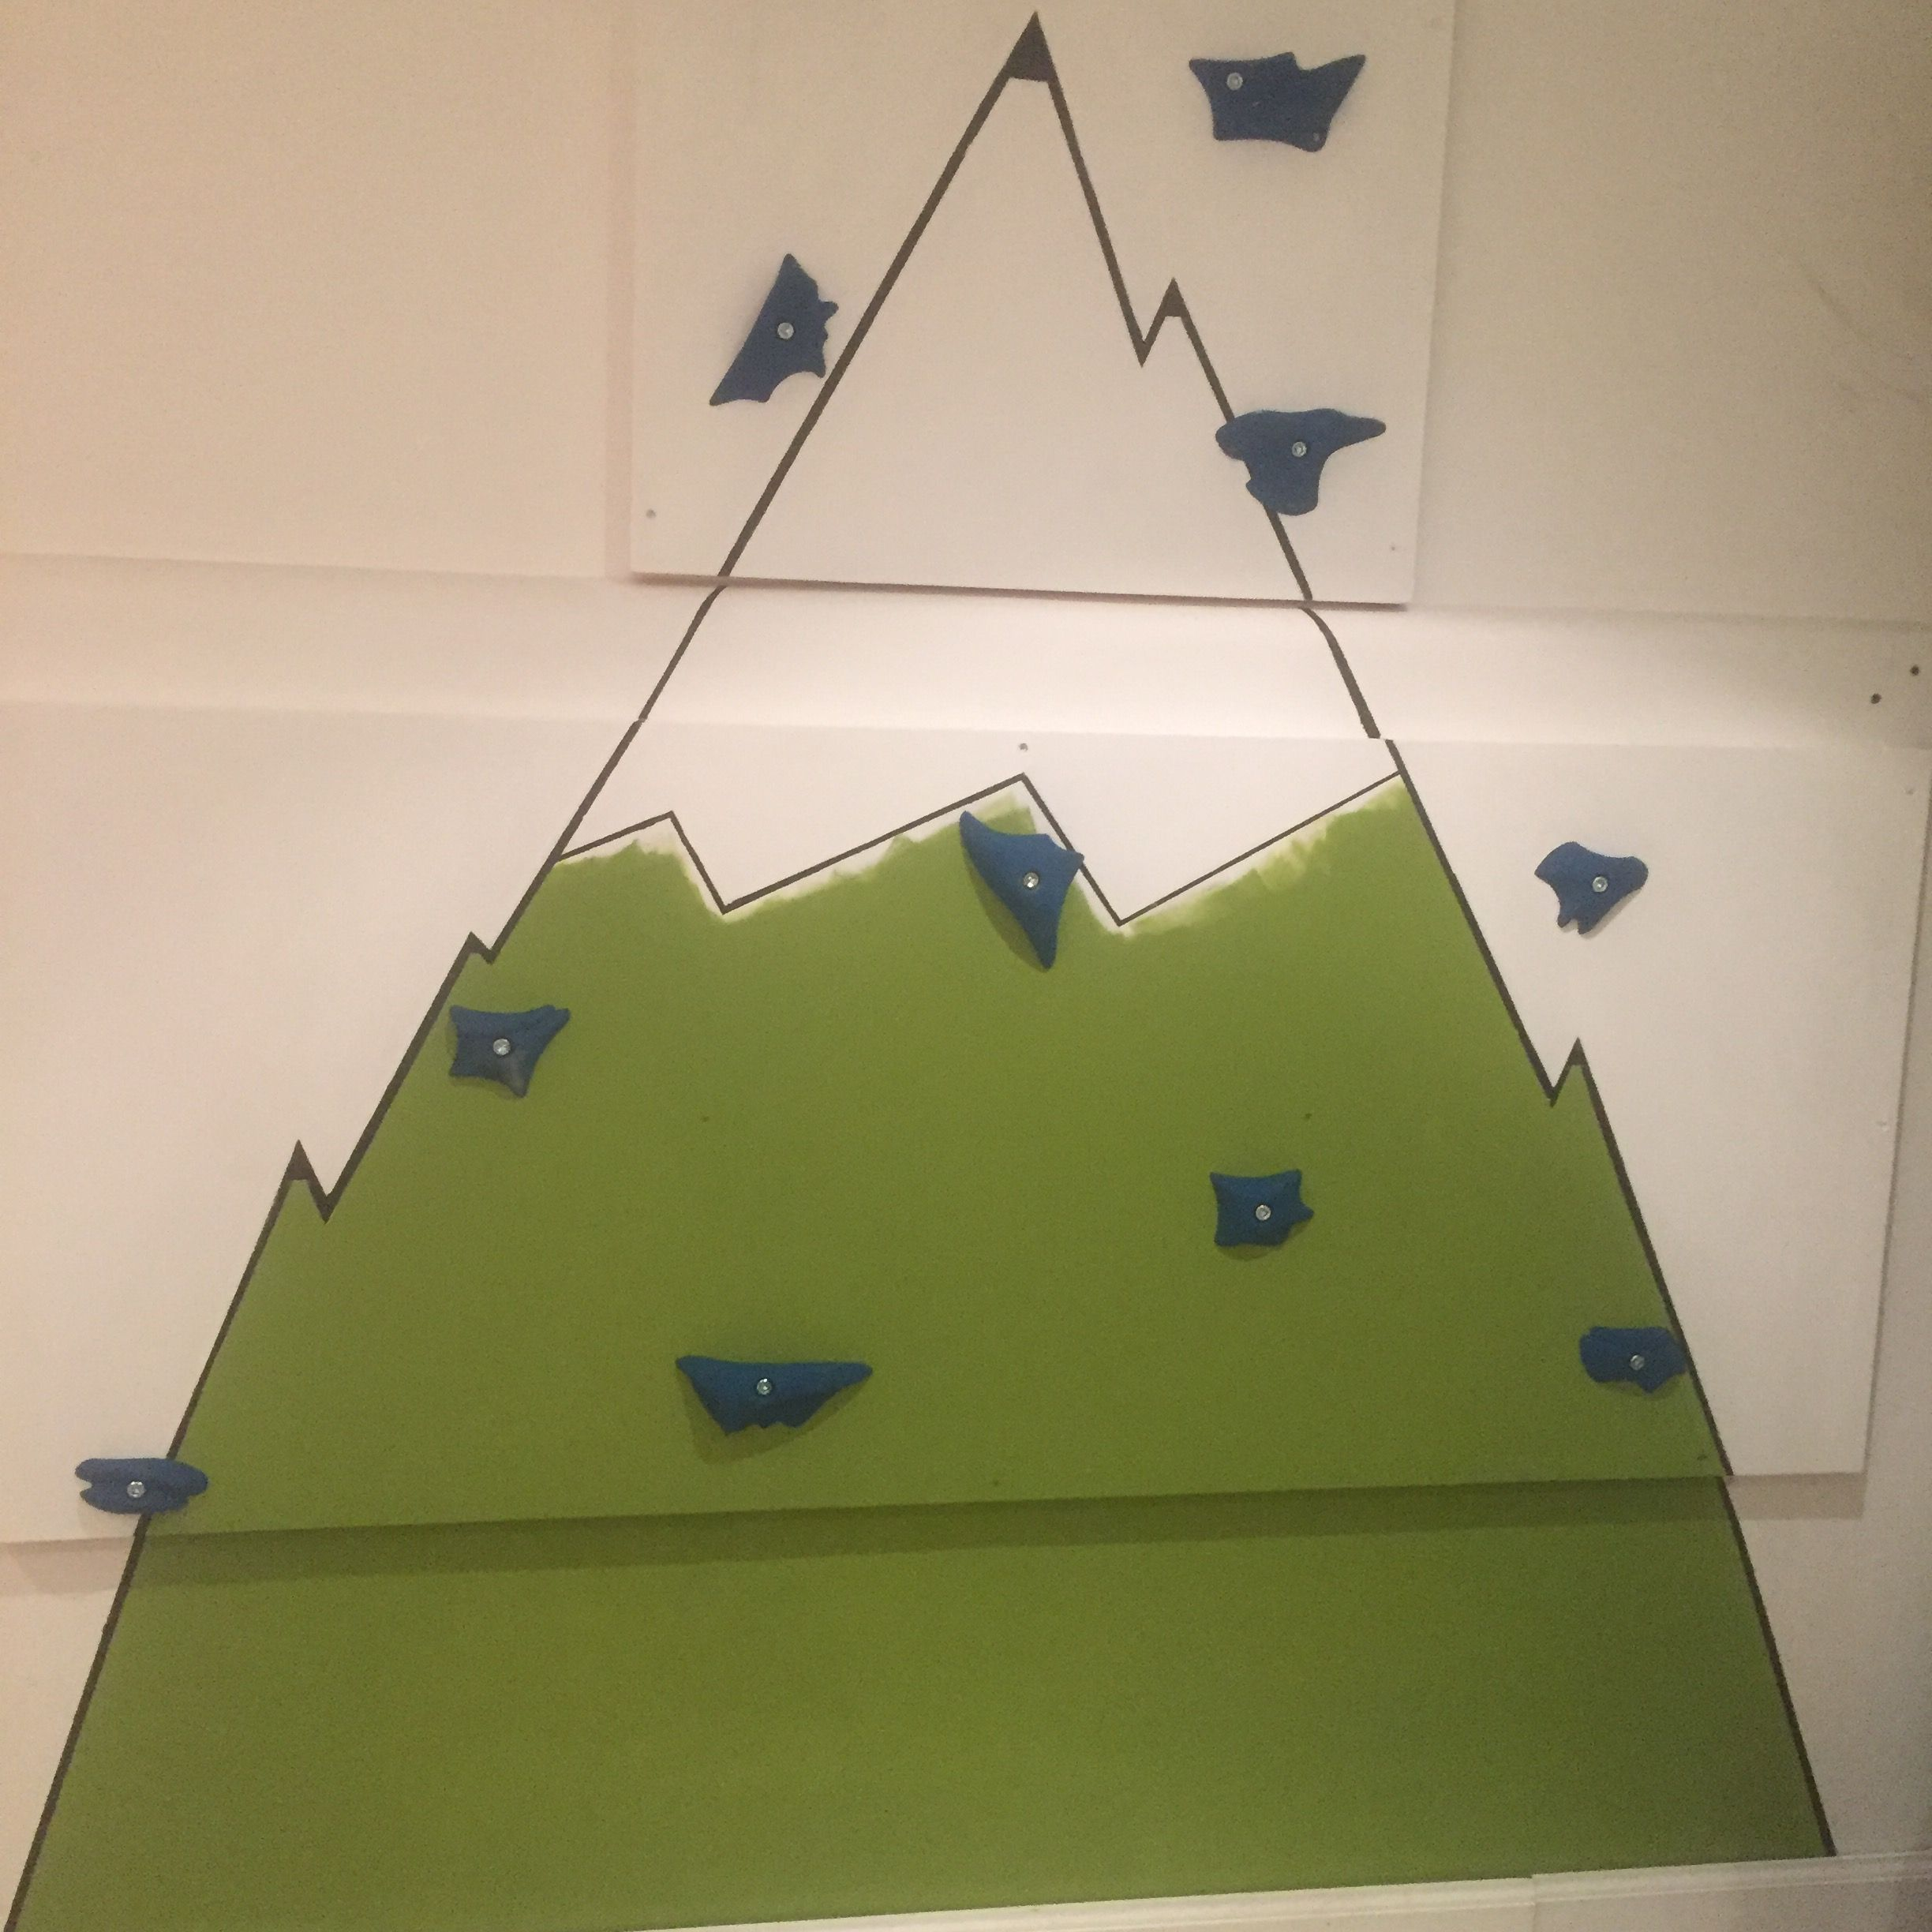 Simple Climbing Board For My Six Year Old's Playroom | Stuff